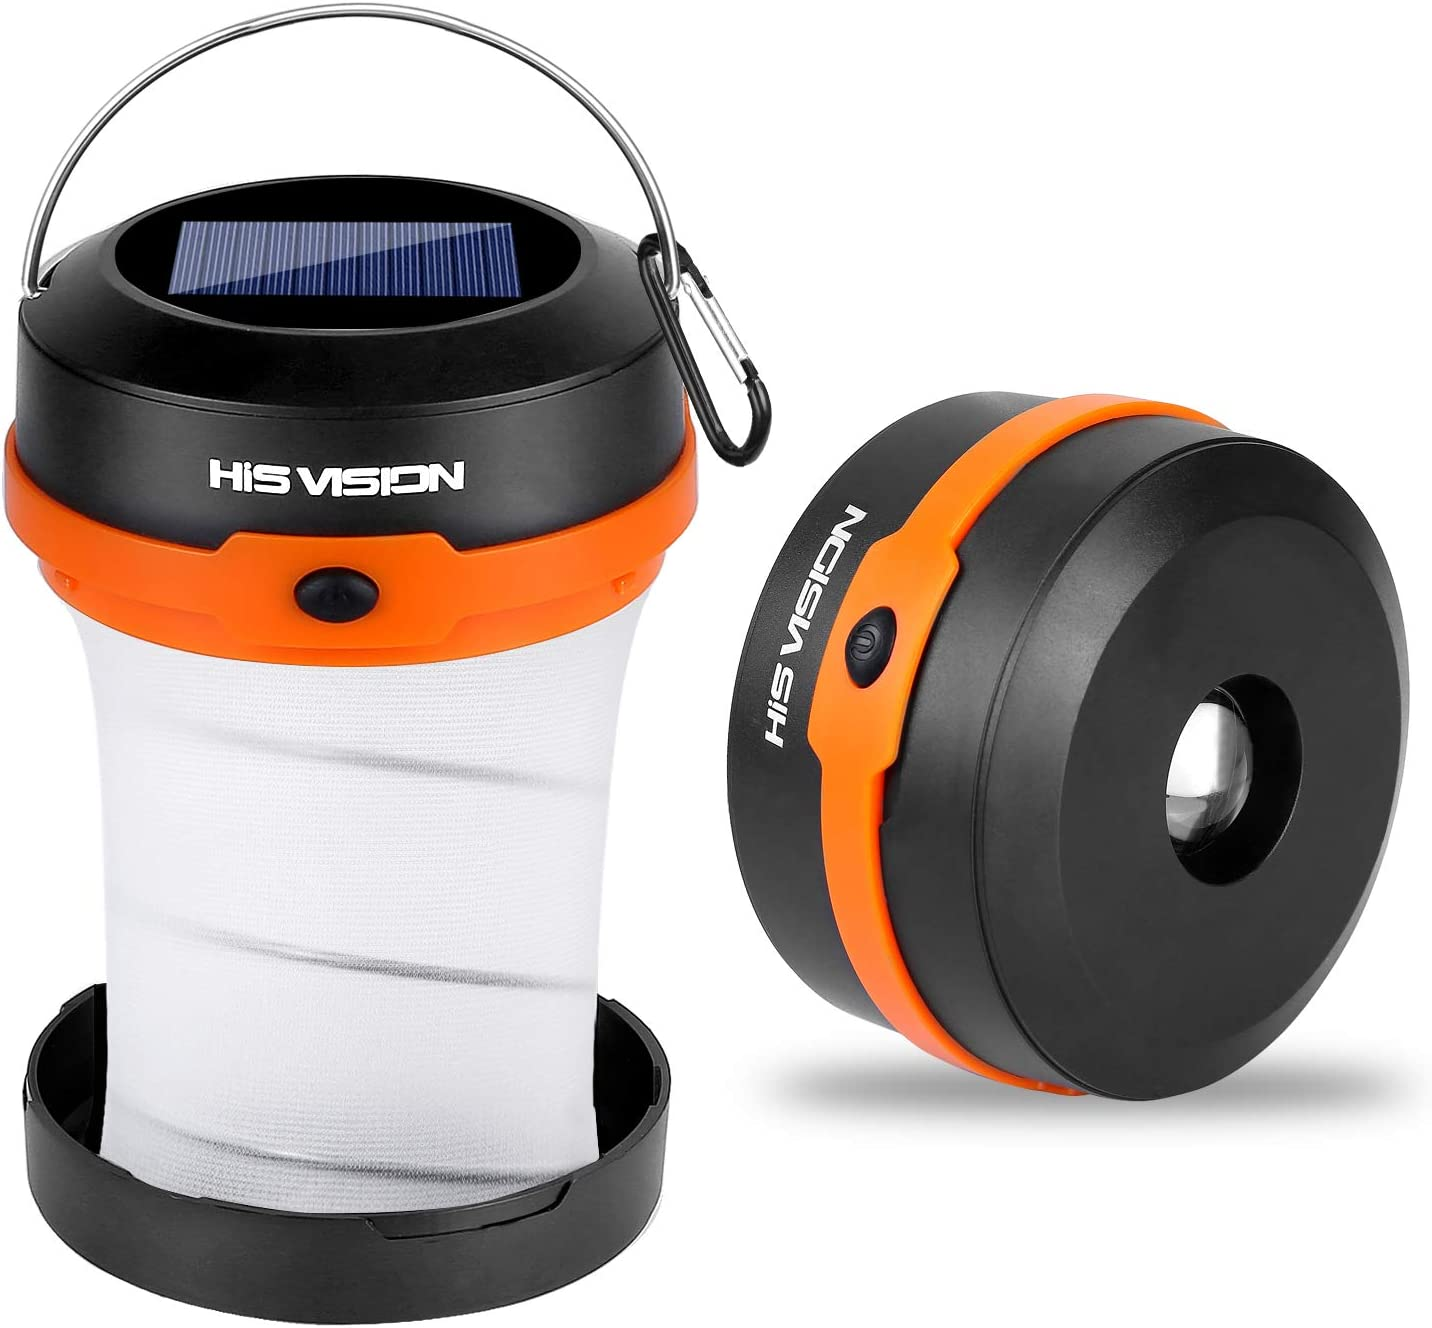 HISVISION Solar Powered LED Camping Lantern, Collapsible Design Solar or USB, Chargeable Emergency Power Bank, Portable 4 Modes Emergency LED Lights for Camping Hiking Fishing Tent